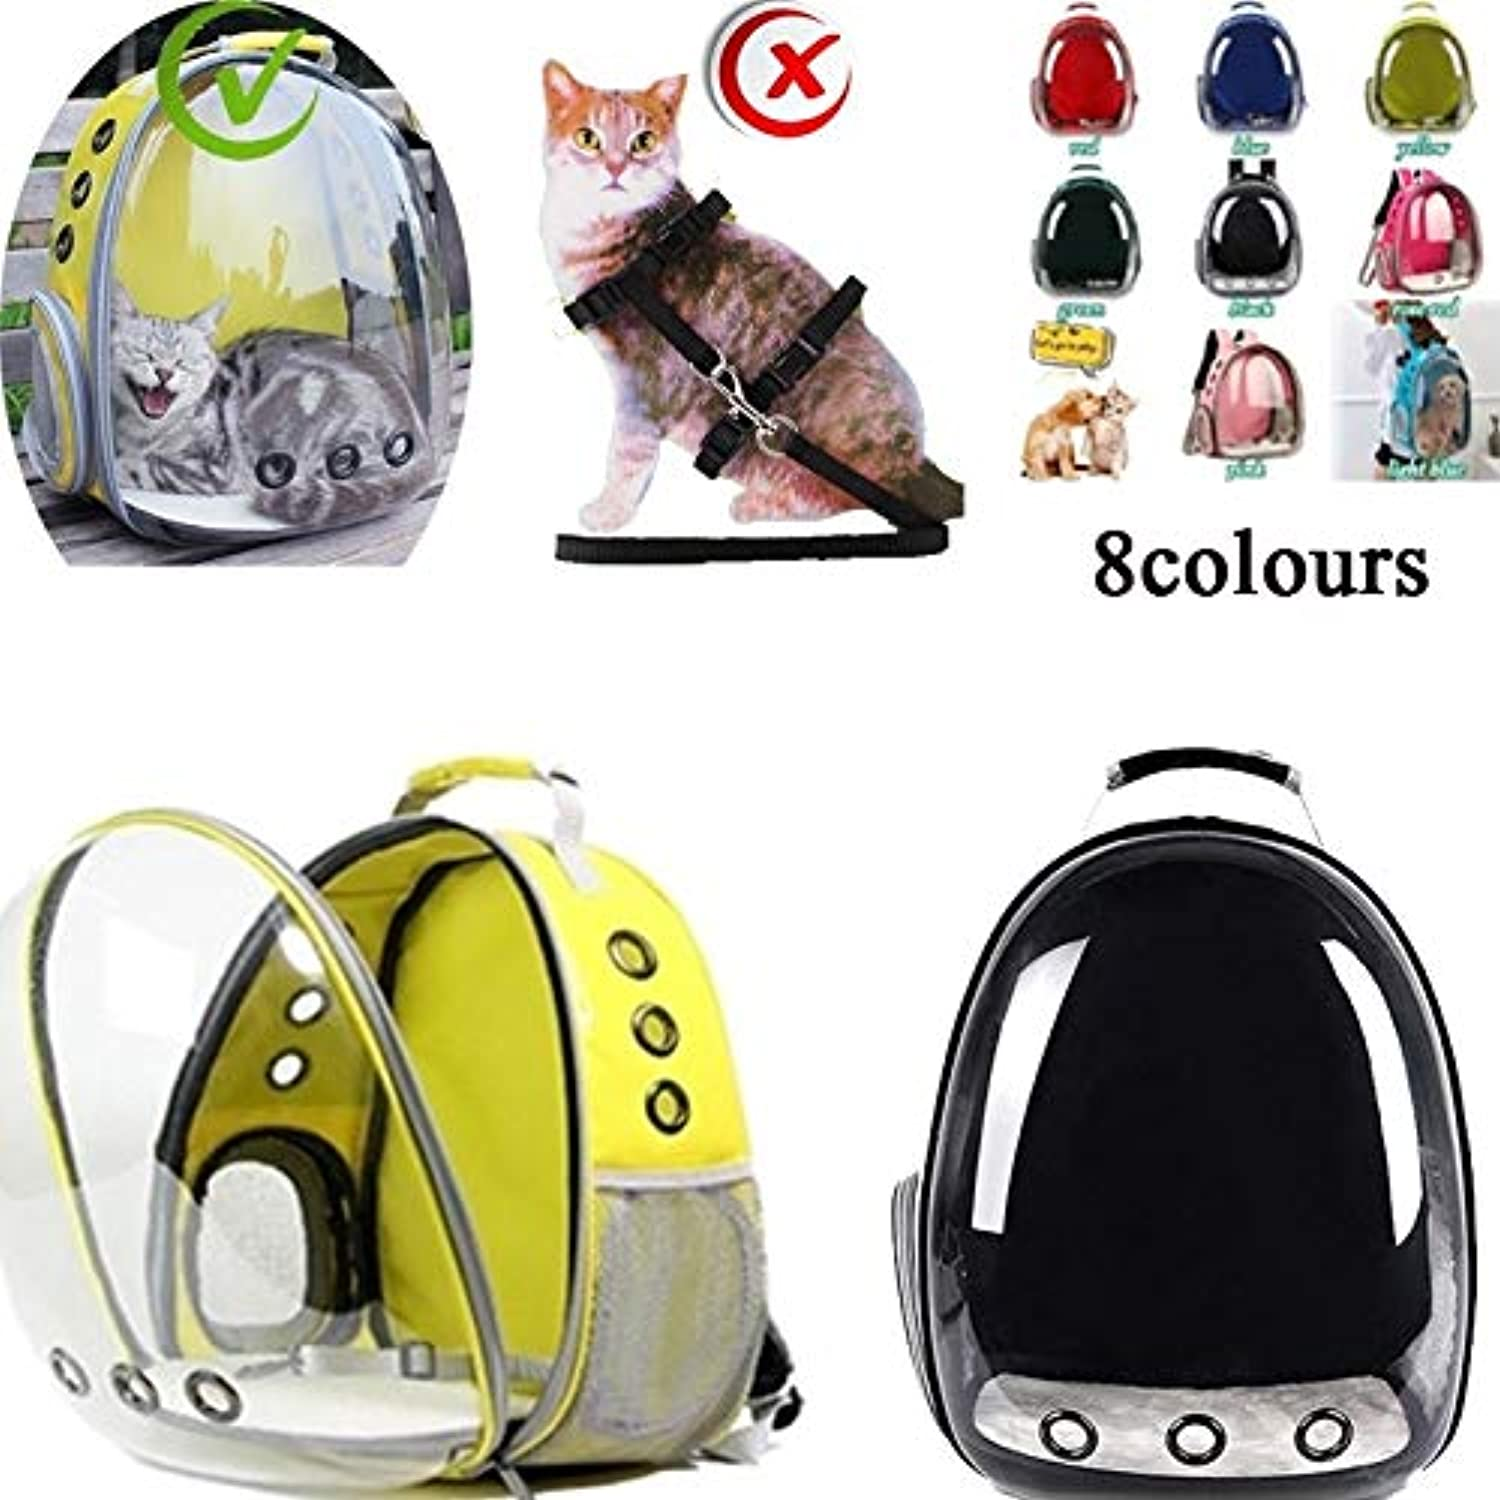 Big Big Shot 8 colors Carrying Clear Pet Carrier Backpack Outdoor Travel Walking Waterproof Breathable Space Capsule Puppy Backpack